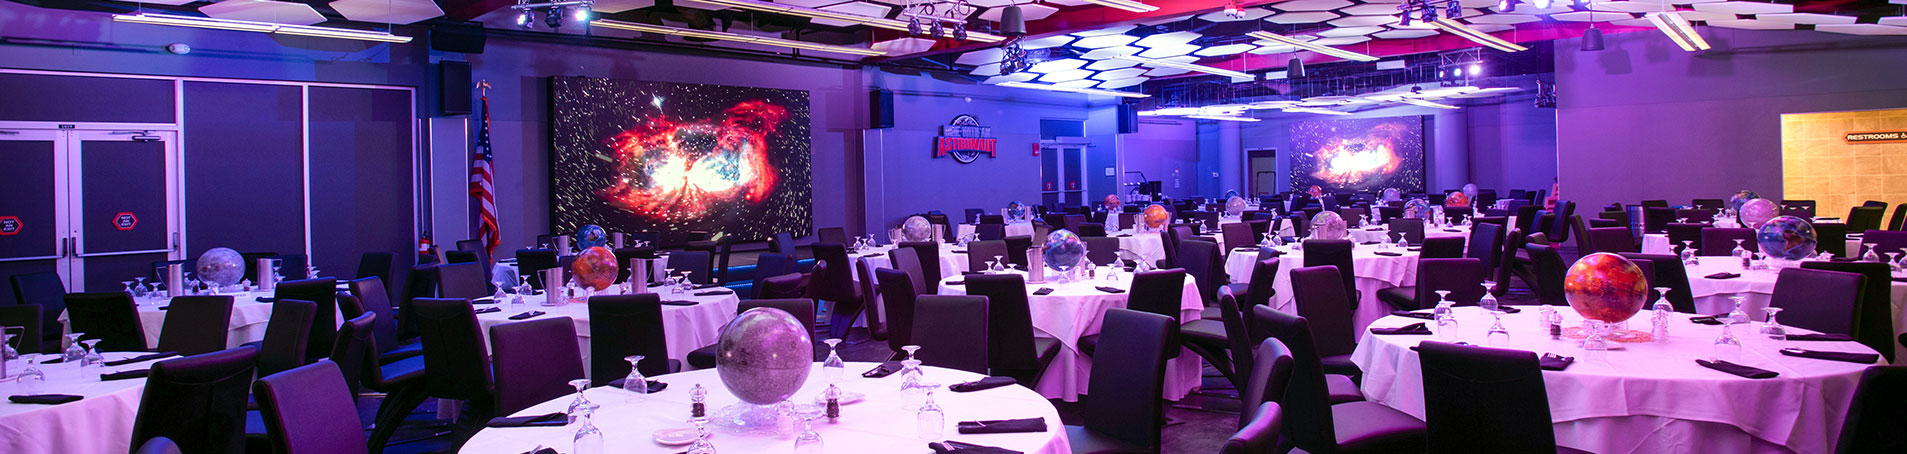 Interior of Dine With An Astronaut